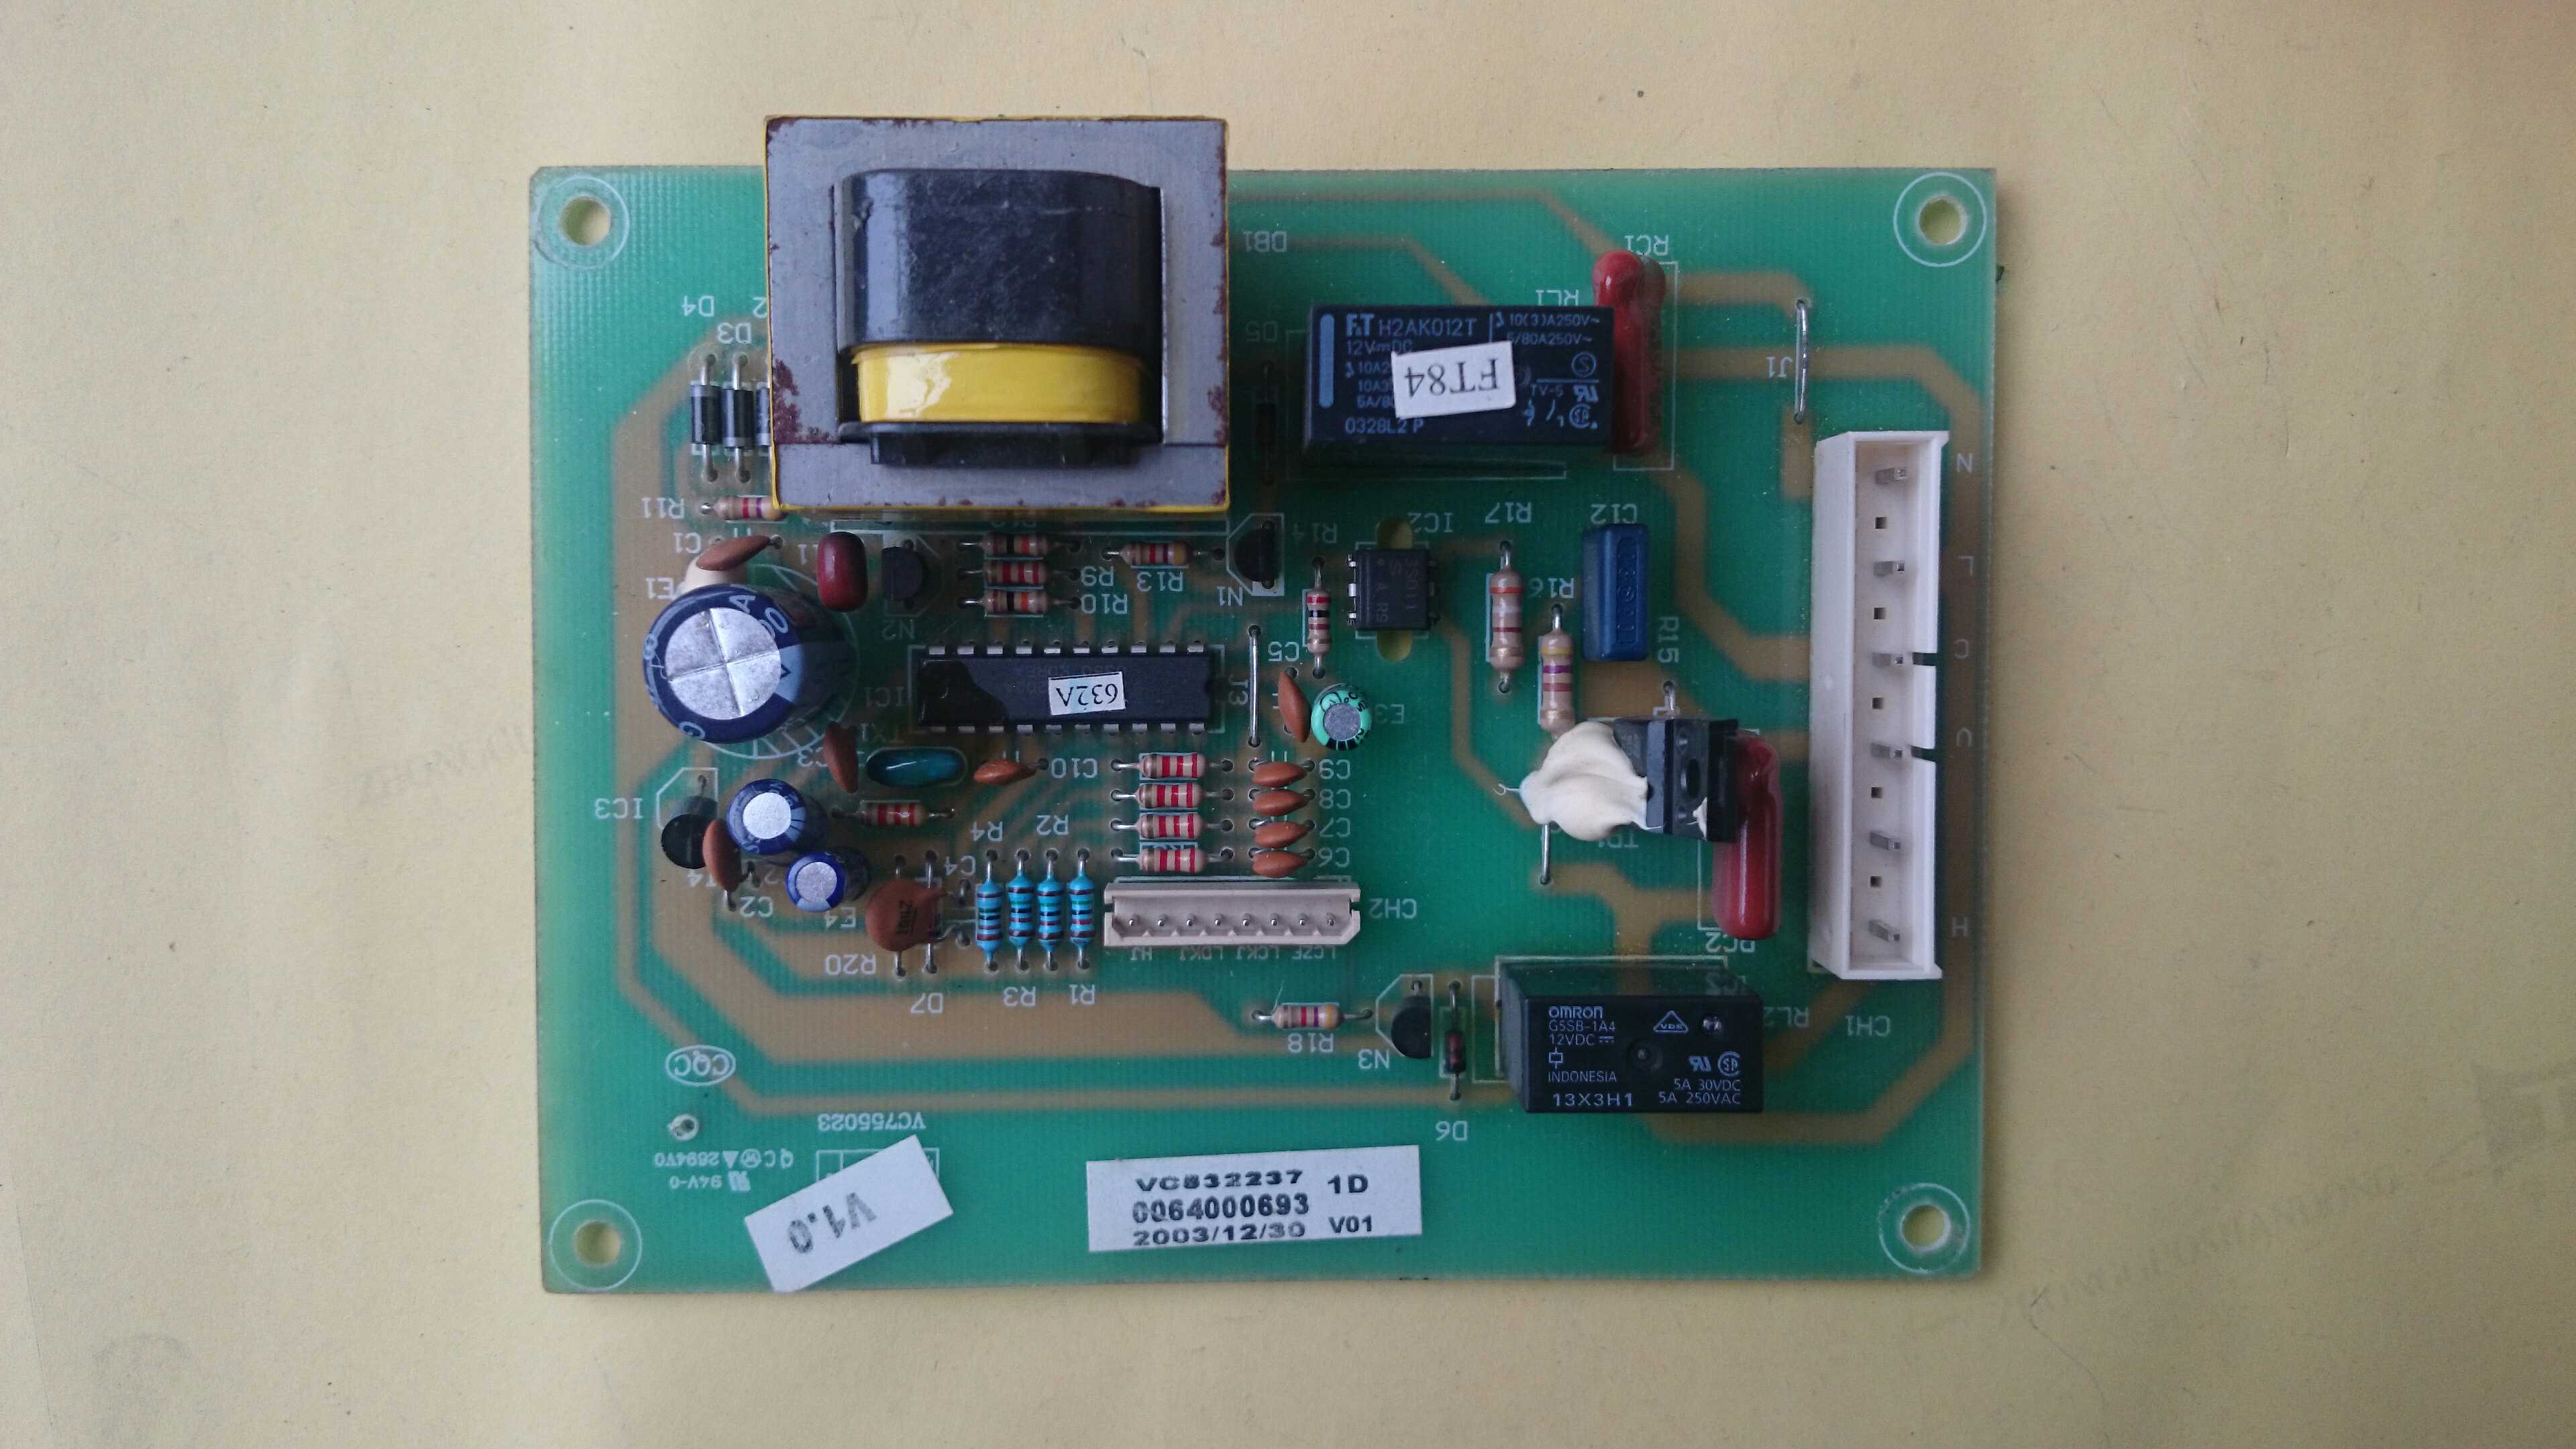 The original Haier refrigerator power main control board 0064000693 for Haier refrigerator BCD-206ZMD haier refrigerator power main control board 0064000489 for the haier refrigerator bcd 163e b 163e c